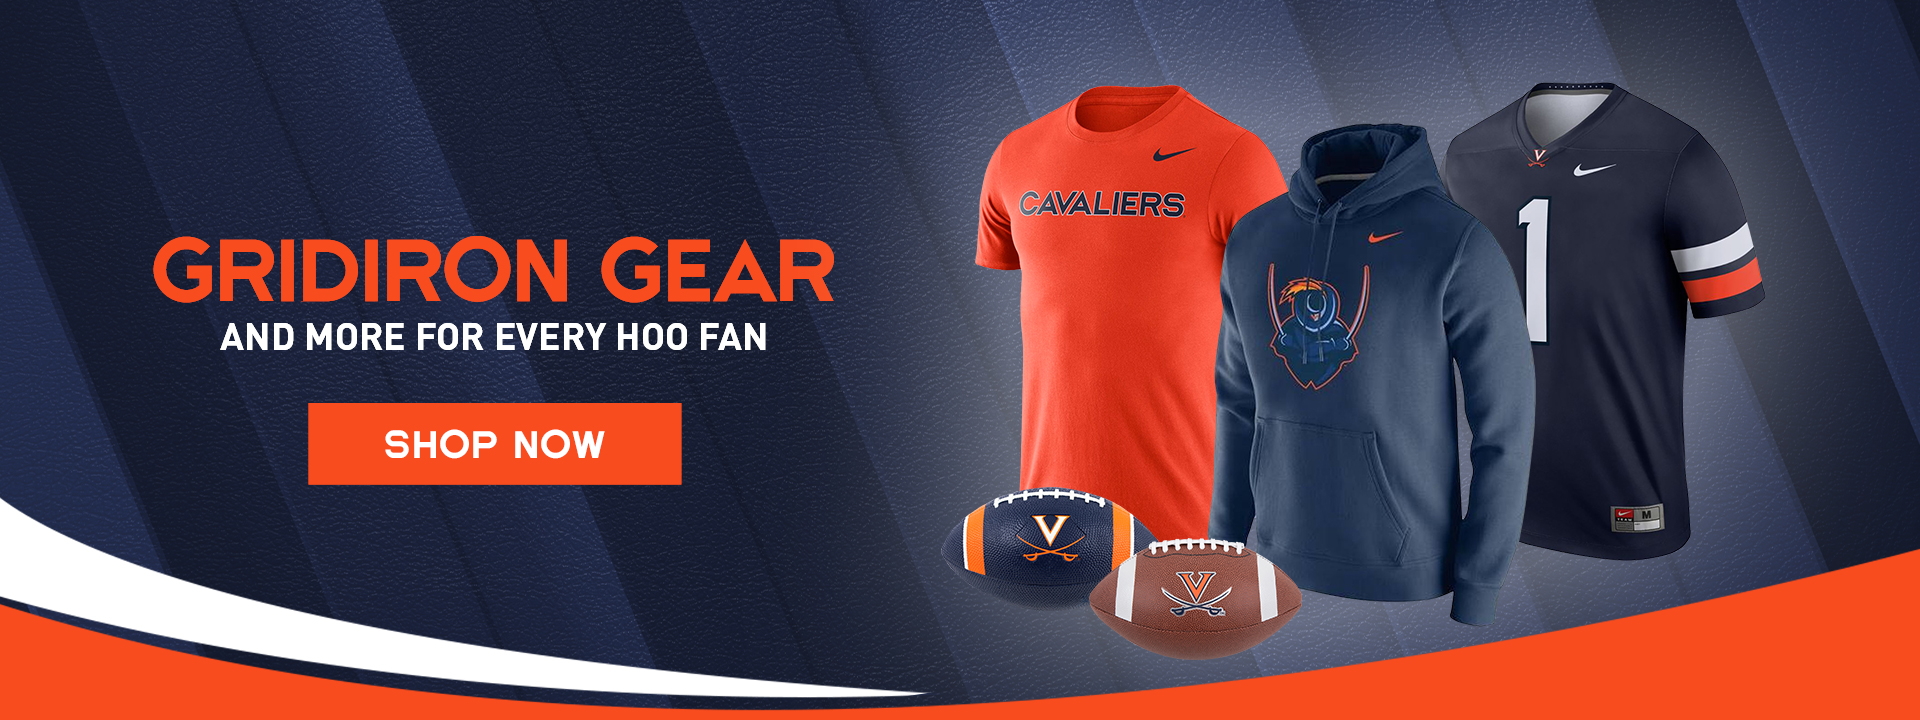 Gridiron gear and more for every Hoo fan | Shop now